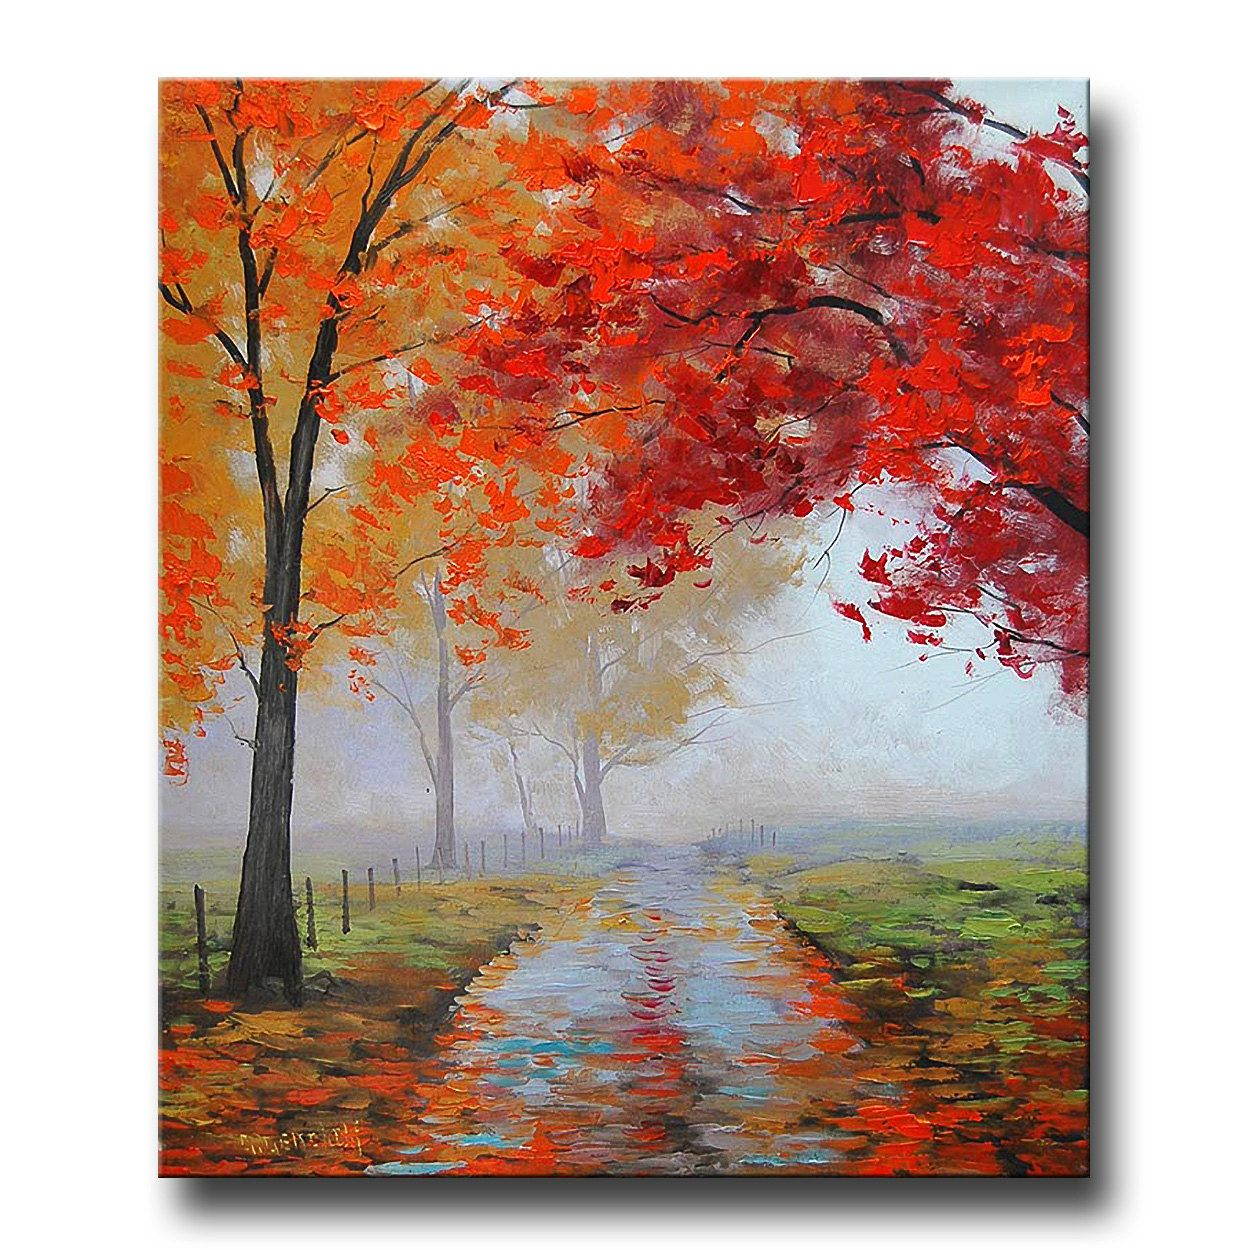 Gercken Autumn Oil Painting Commissioned Fall Trees Impressionism Misty Road Art Deco 158 00 Via Etsy